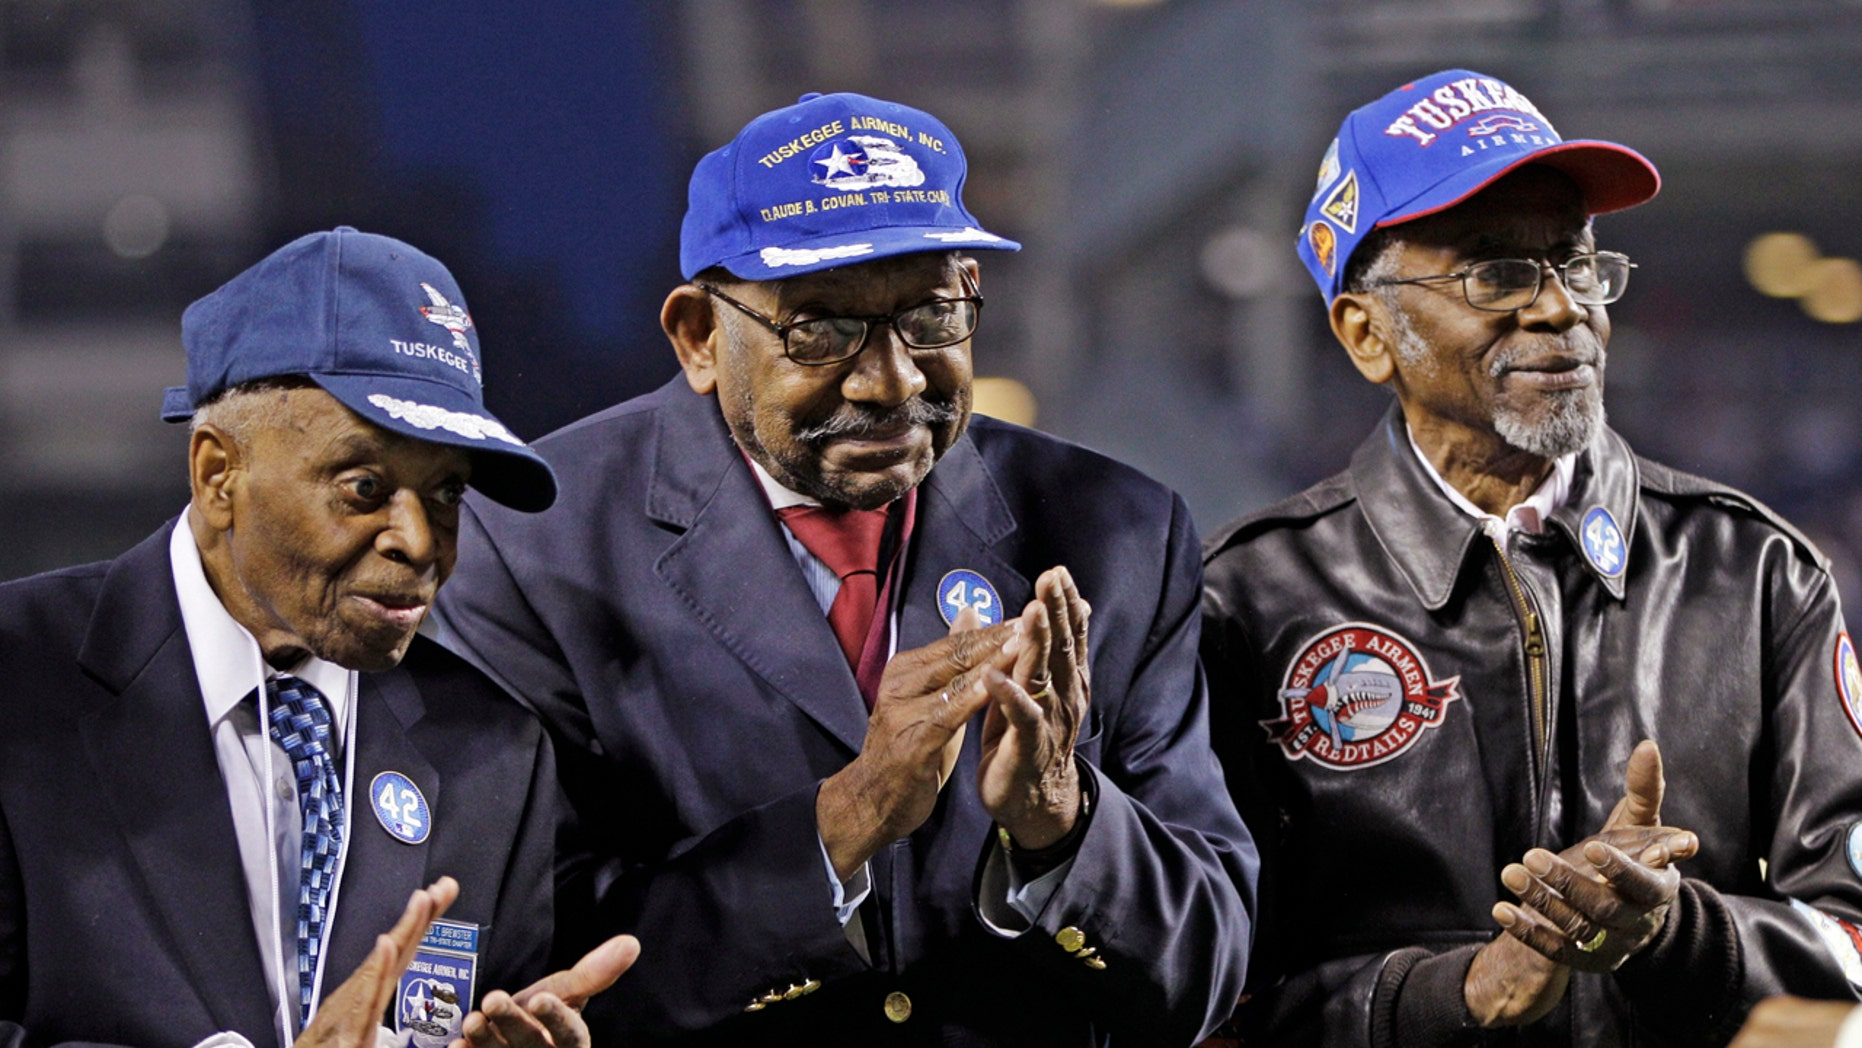 Tuskegee Airman Wilfred DeFour (far right) died from apparent natural causes at the age of 100. (AP Photo/Kathy Willens, File)